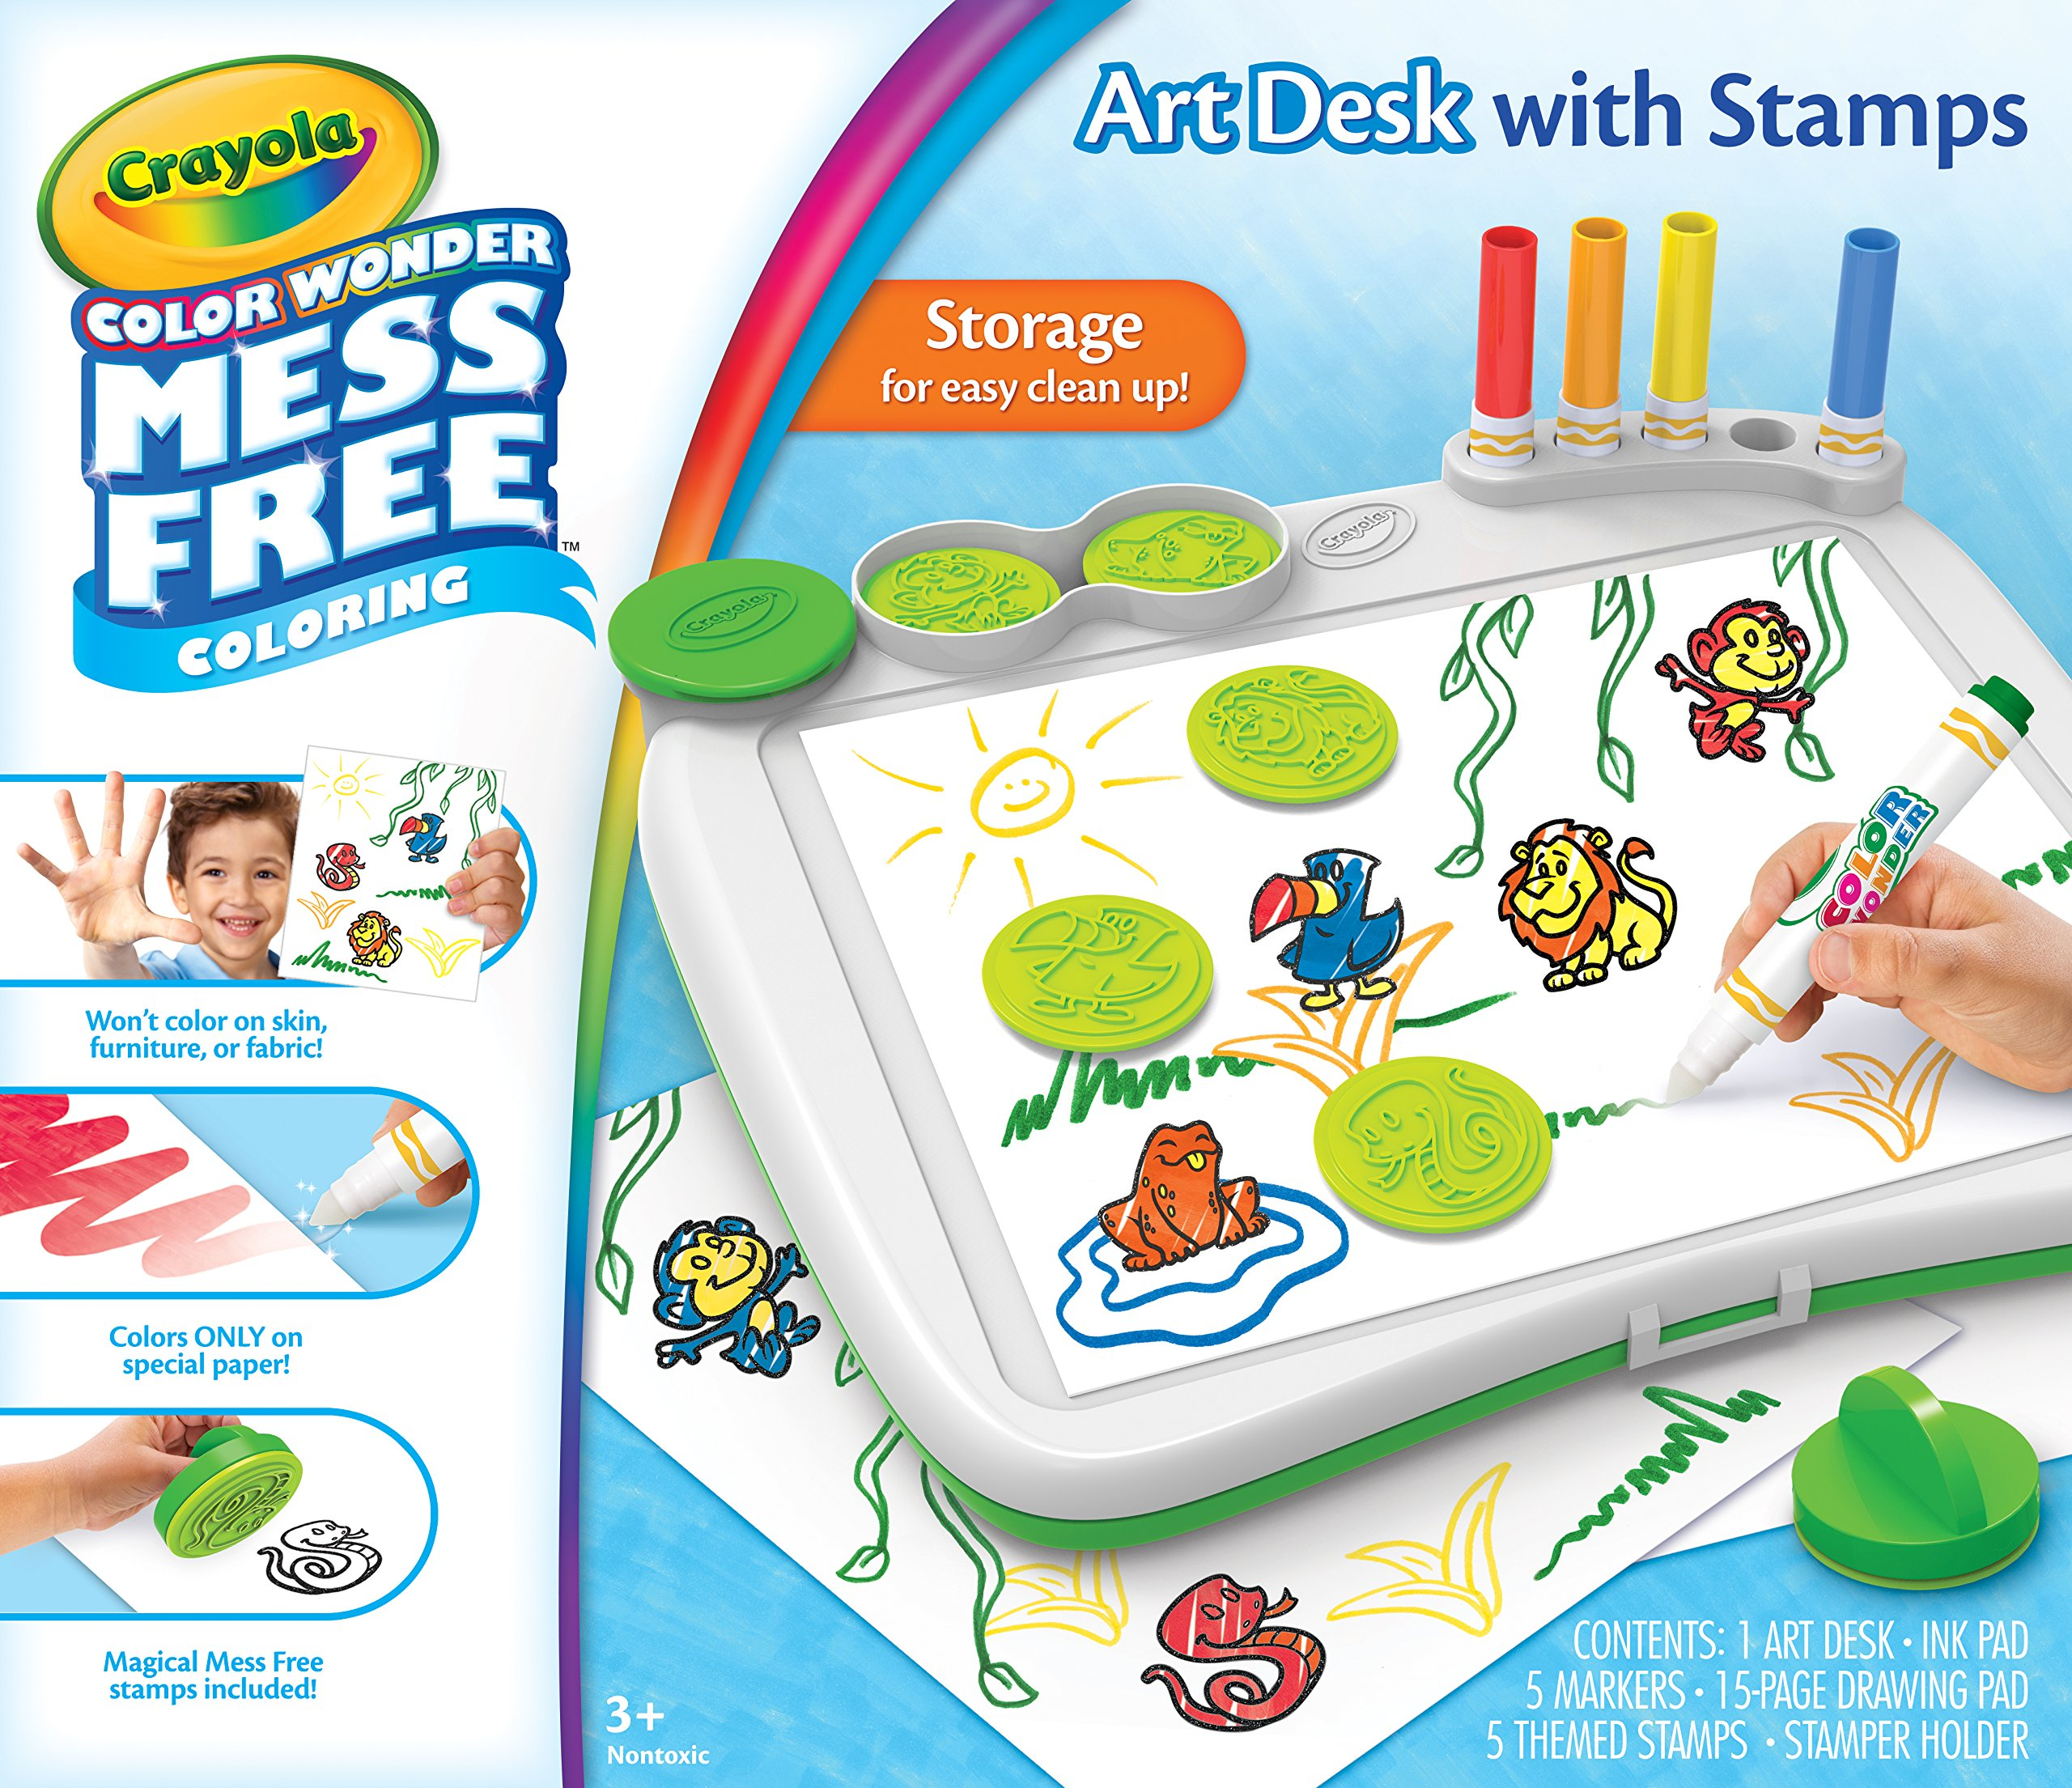 buy crayola color wonder mess free airbrush kit in cheap price on